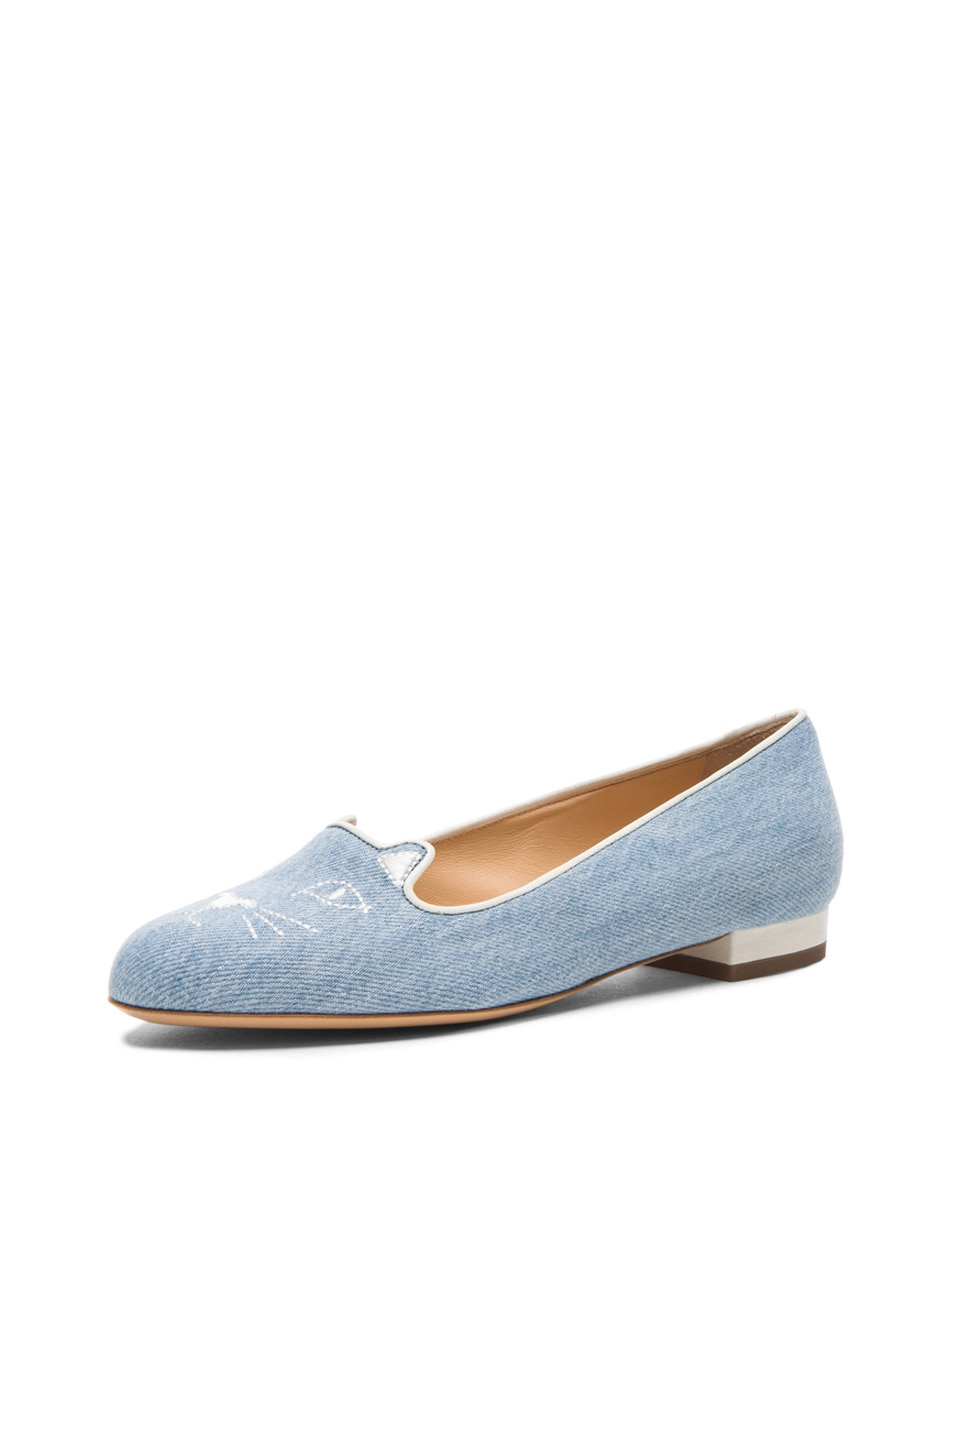 Image 3 of Charlotte Olympia Kitty Denim Flats in Washed Denim